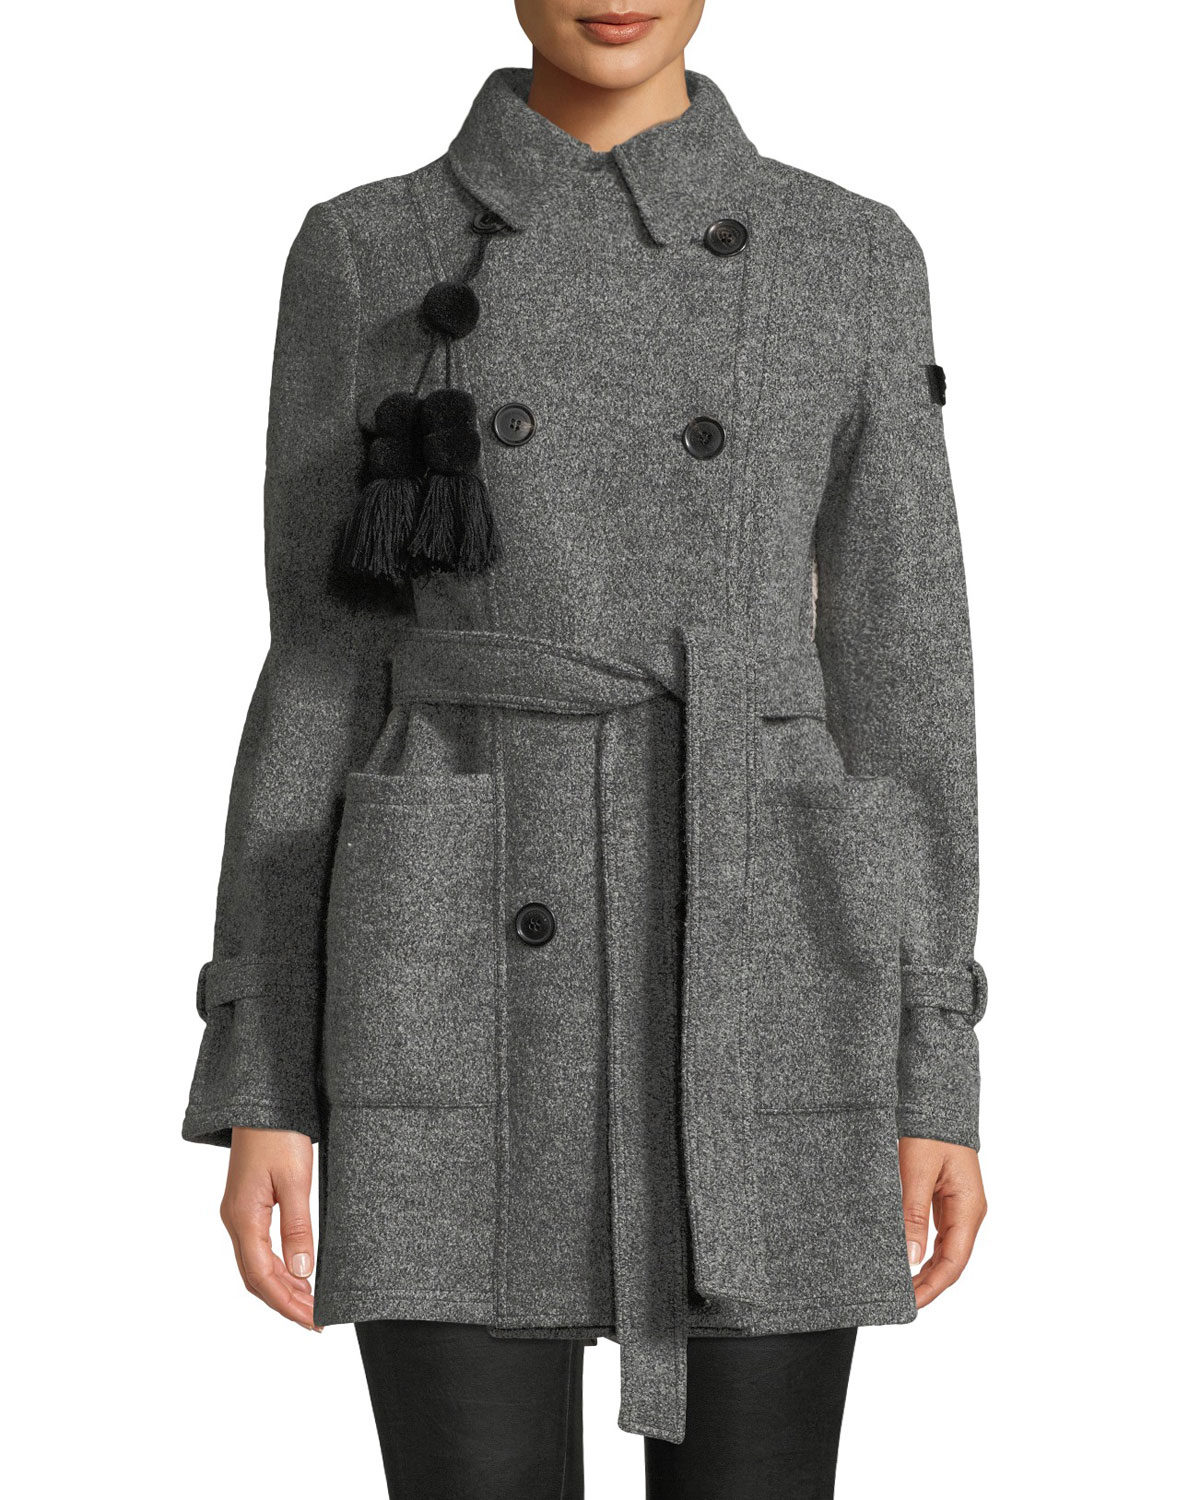 PEUTEREY Nahiossi Wool Coat W/ Quilted Back in Gray